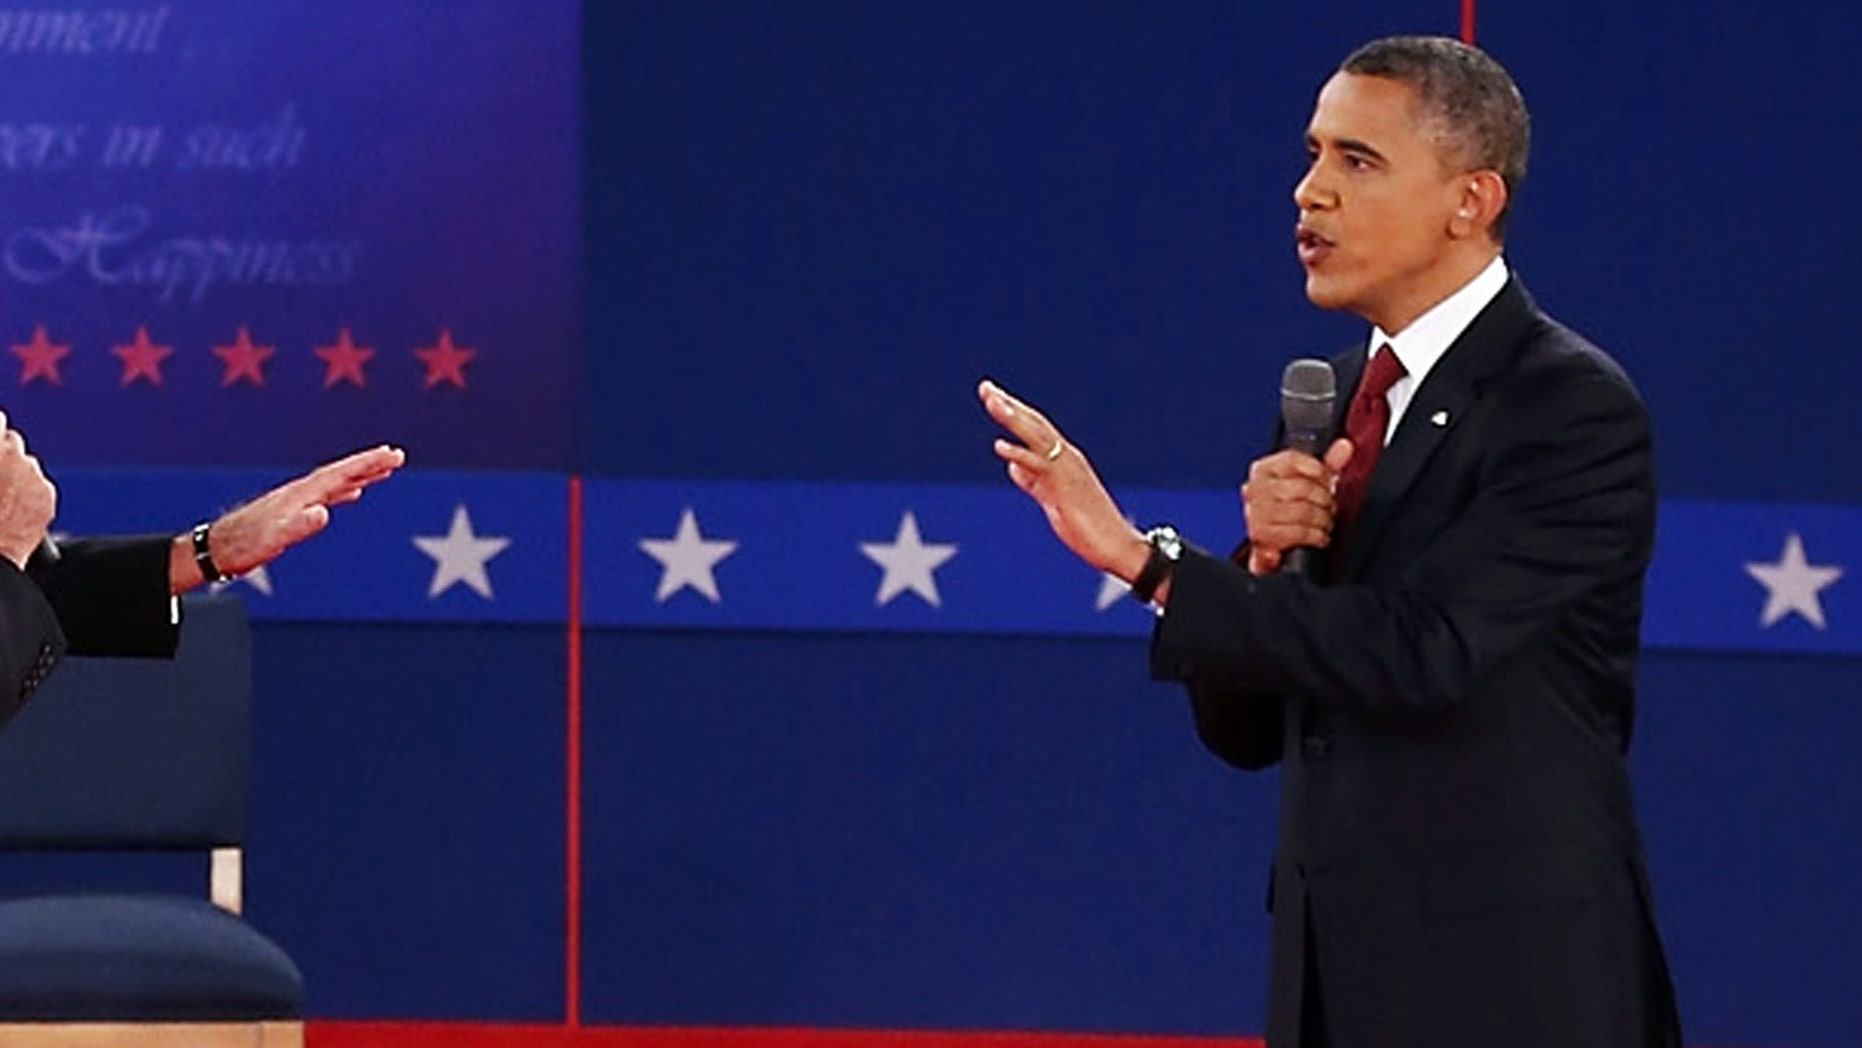 FiOCTOBER 16:  Republican presidential candidate Mitt Romney (L) and U.S. President Barack Obama talk to each other during a town hall style debate at Hofstra University October 16, 2012 in Hempstead, New York. During the second of three presidential debates, the candidates fielded questions from audience members on a wide variety of issues.  (Photo by Bruce Bennett/Getty Images)